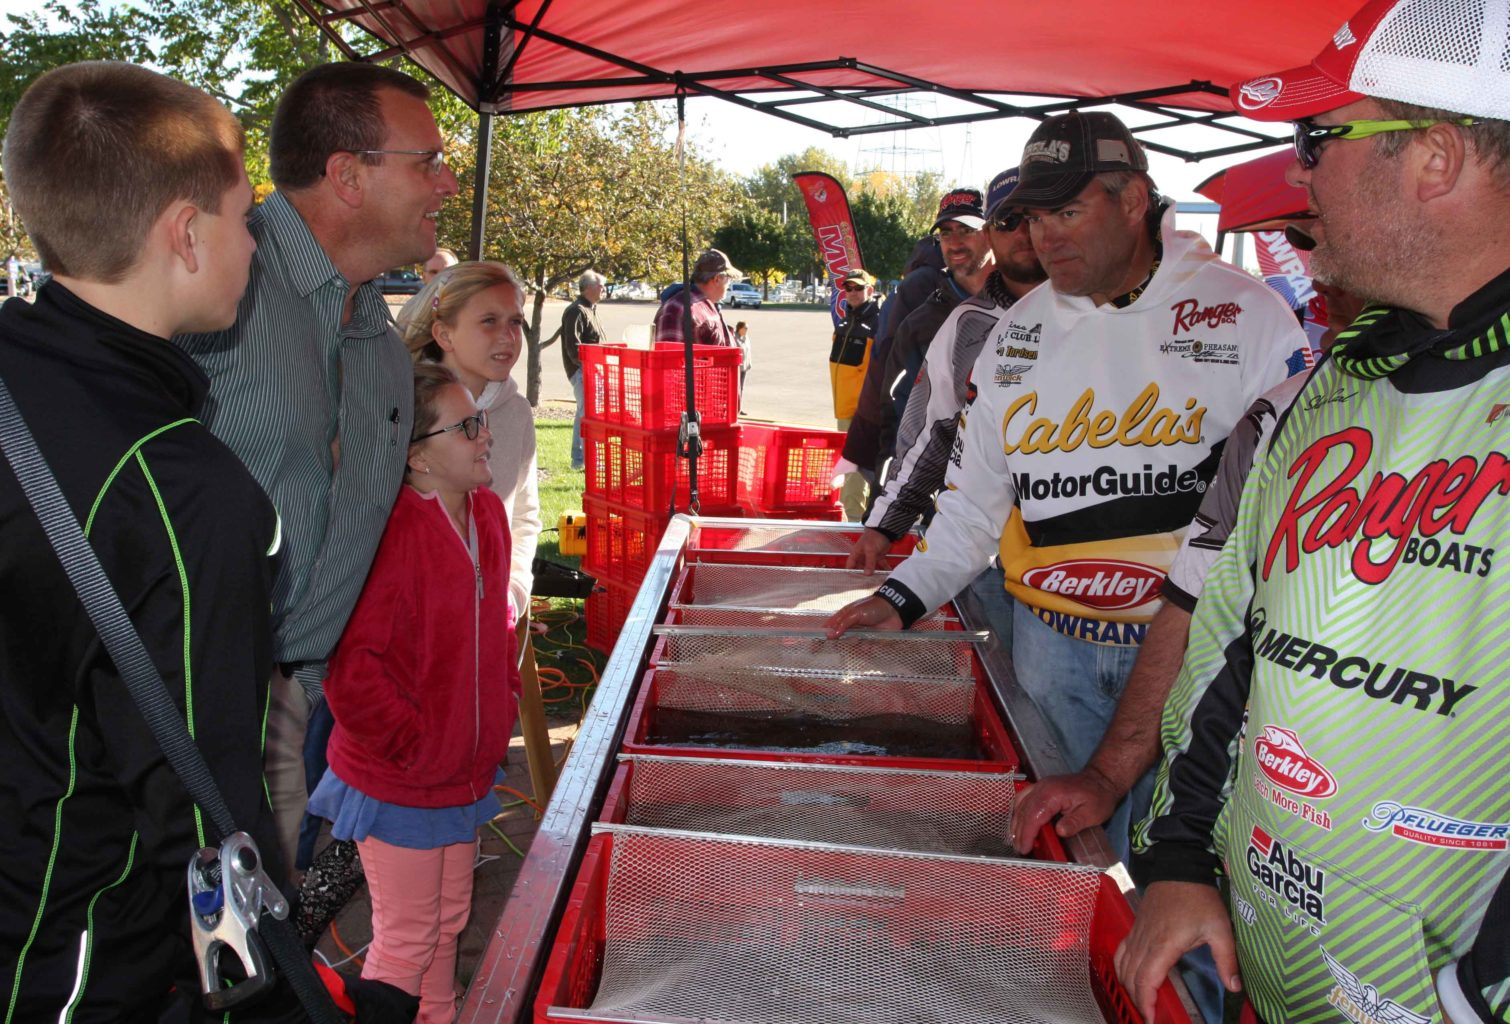 The bump line offered fans a chance to meet the anglers and get a sneak peek at their catches.